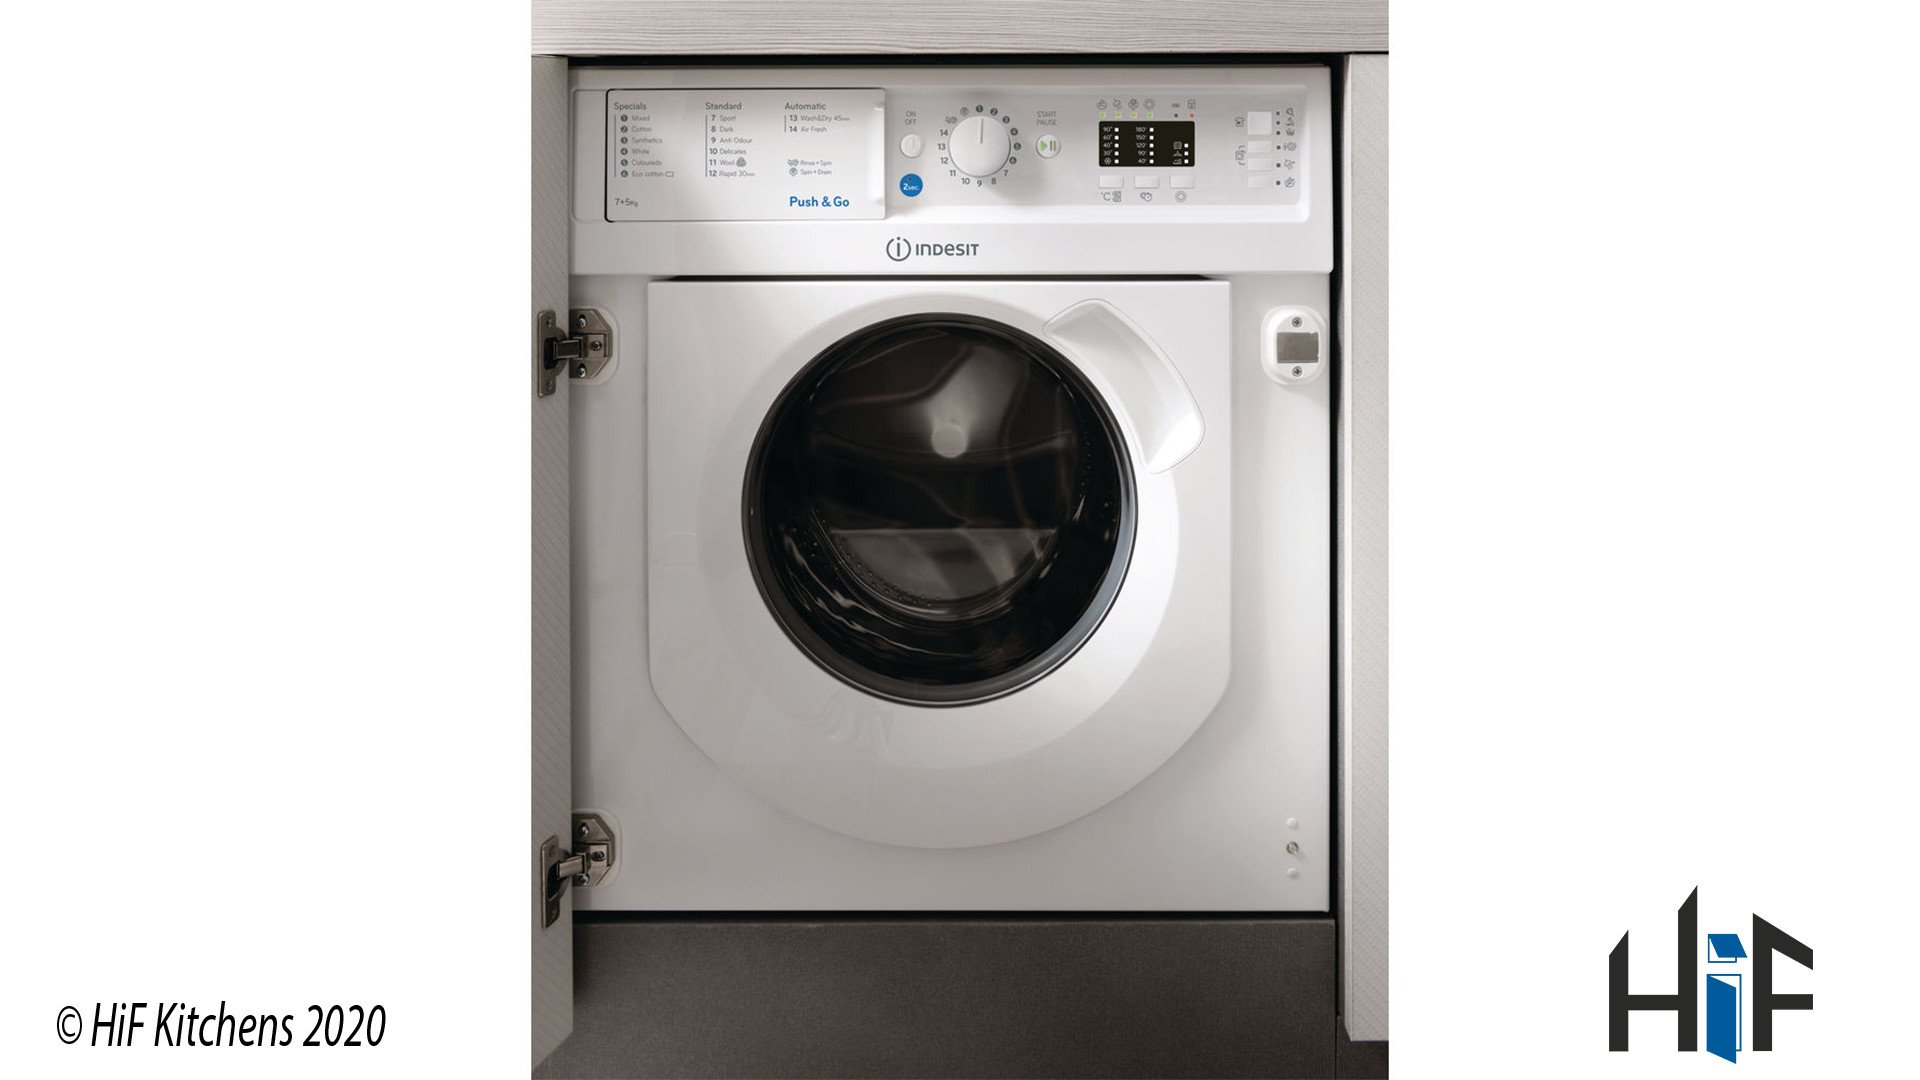 Indesit Integrated Washer Dryer Ecotime BI WDIL 7125 UK supplied by HiF Kitchens